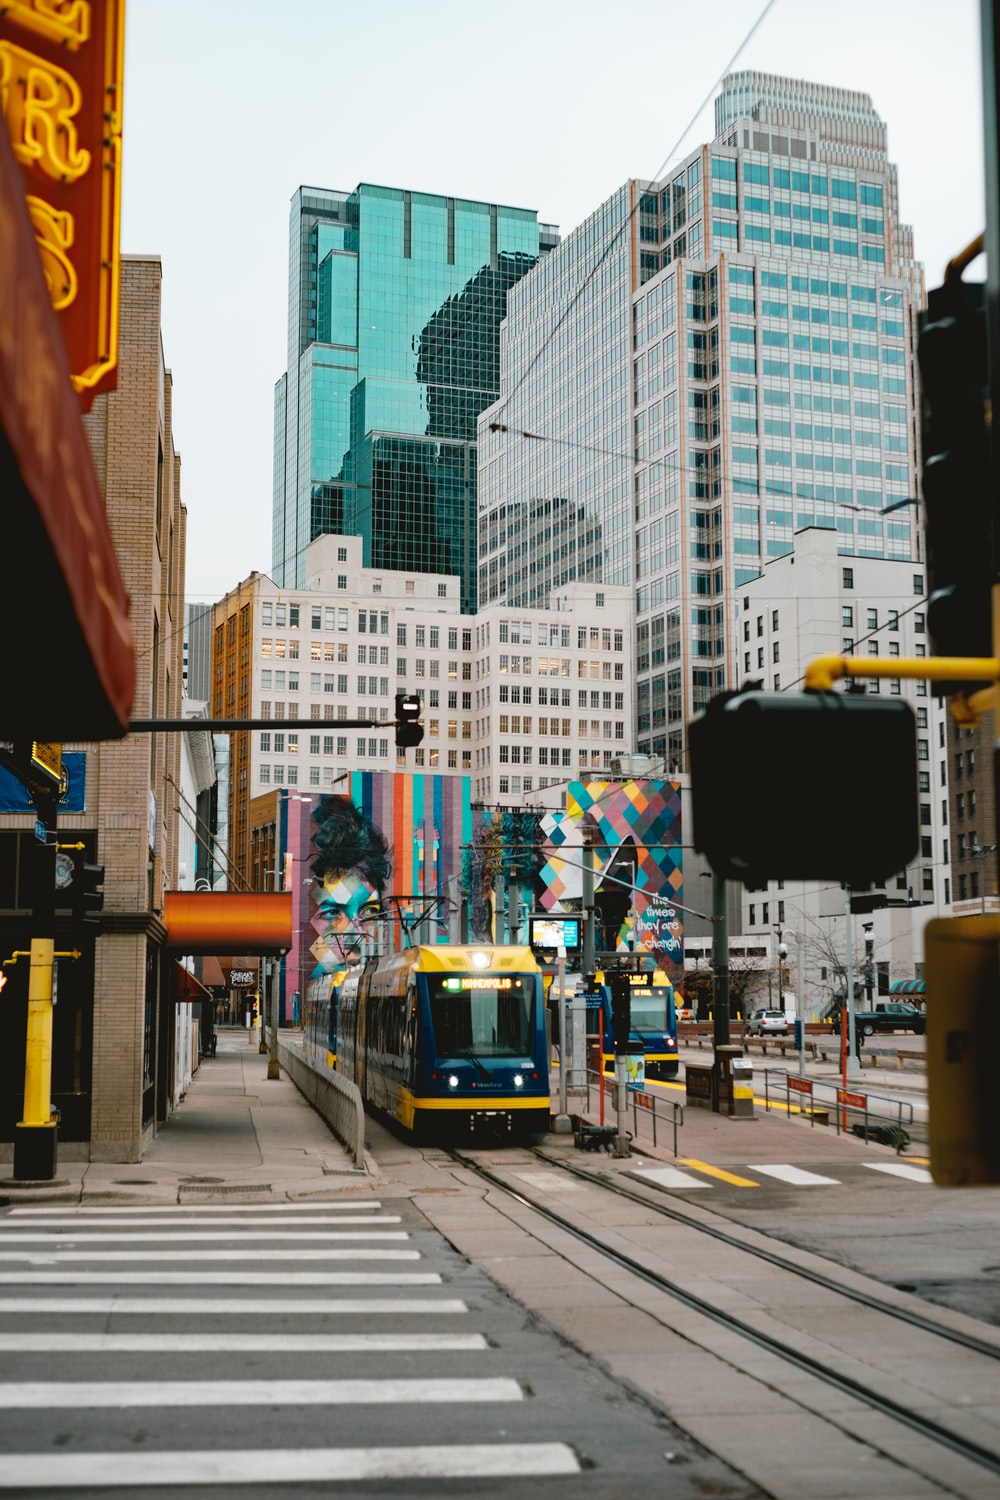 yellow and black tram on road during daytime